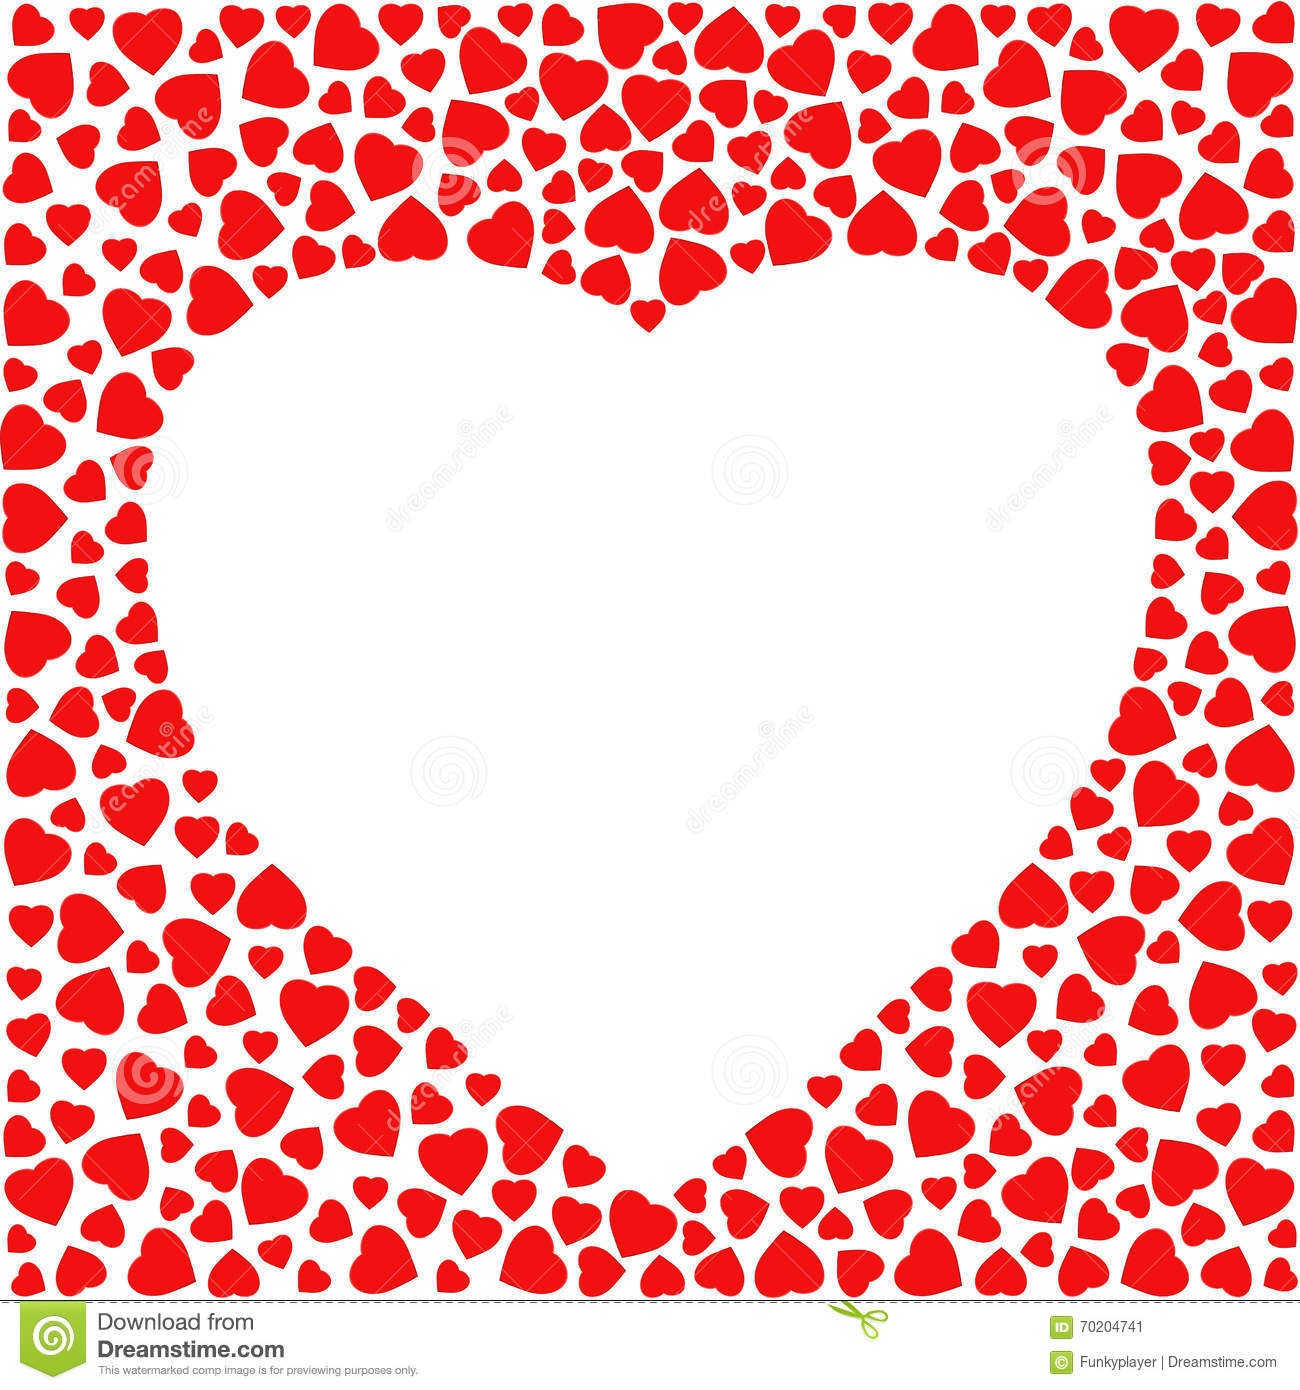 border with red hearts greeting card design template decorated with